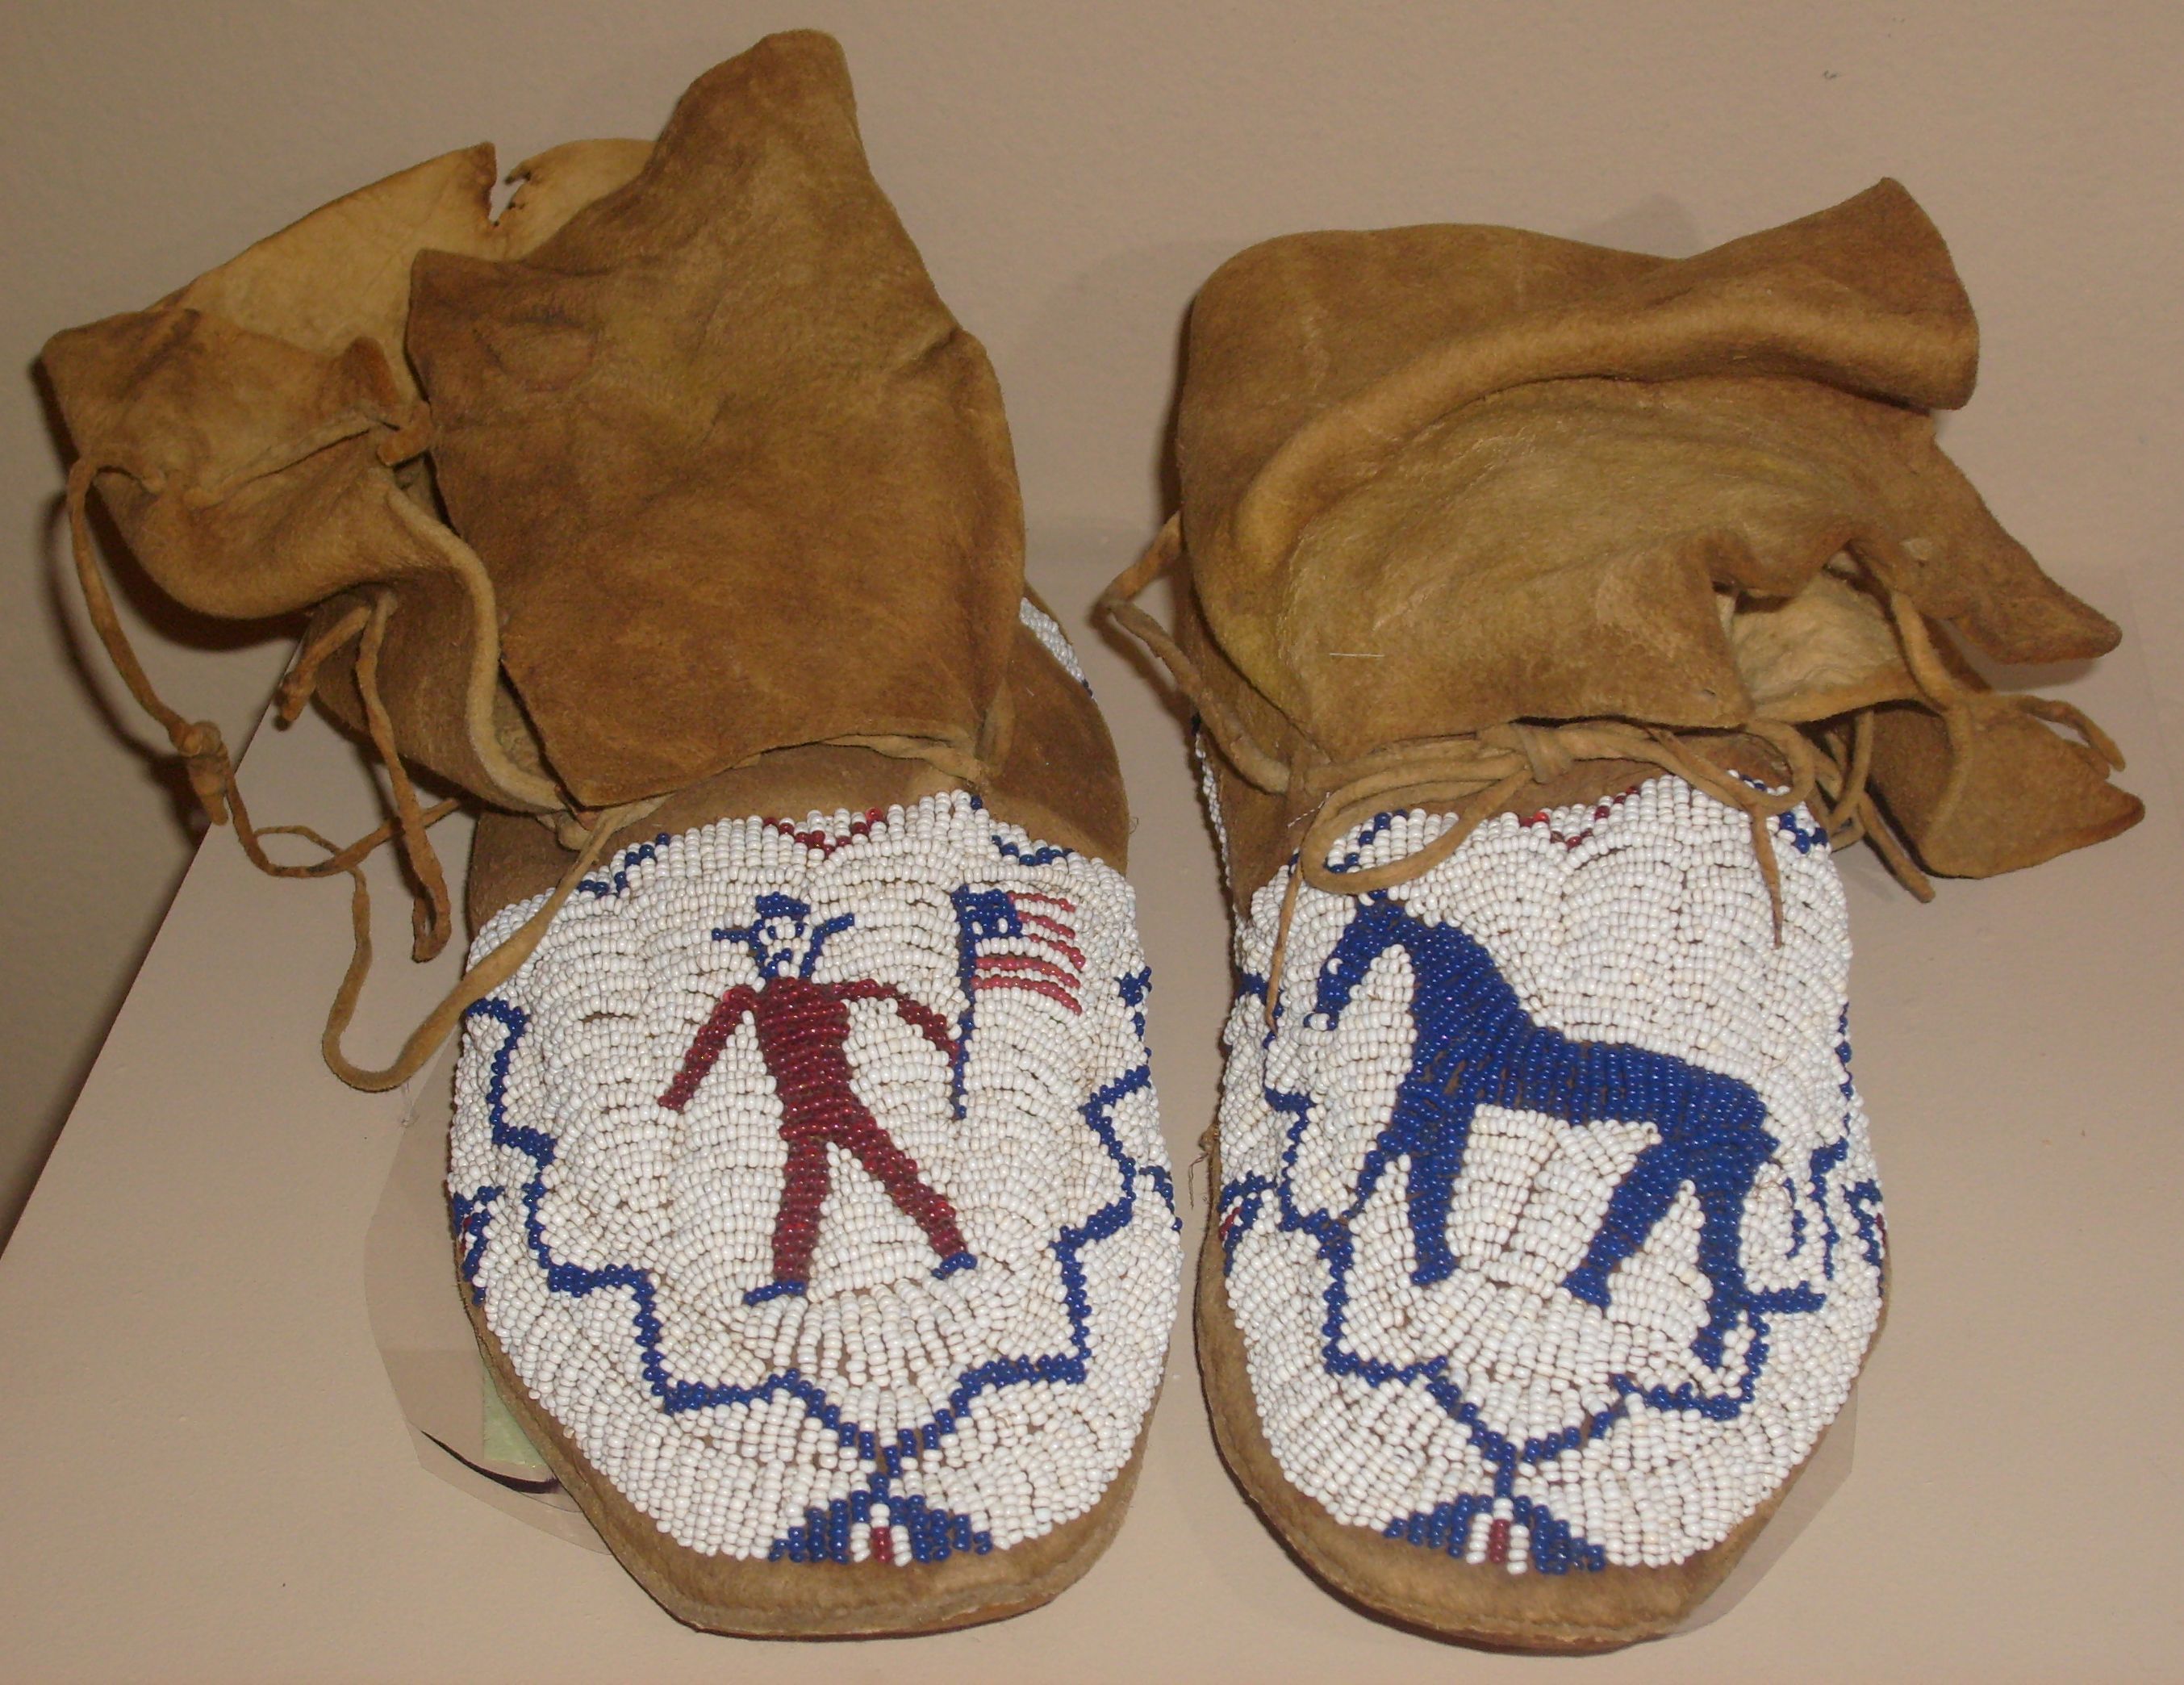 Beaded moccasins that belonged to Chief Washakie (Shoshone), Wyoming, c. 1900